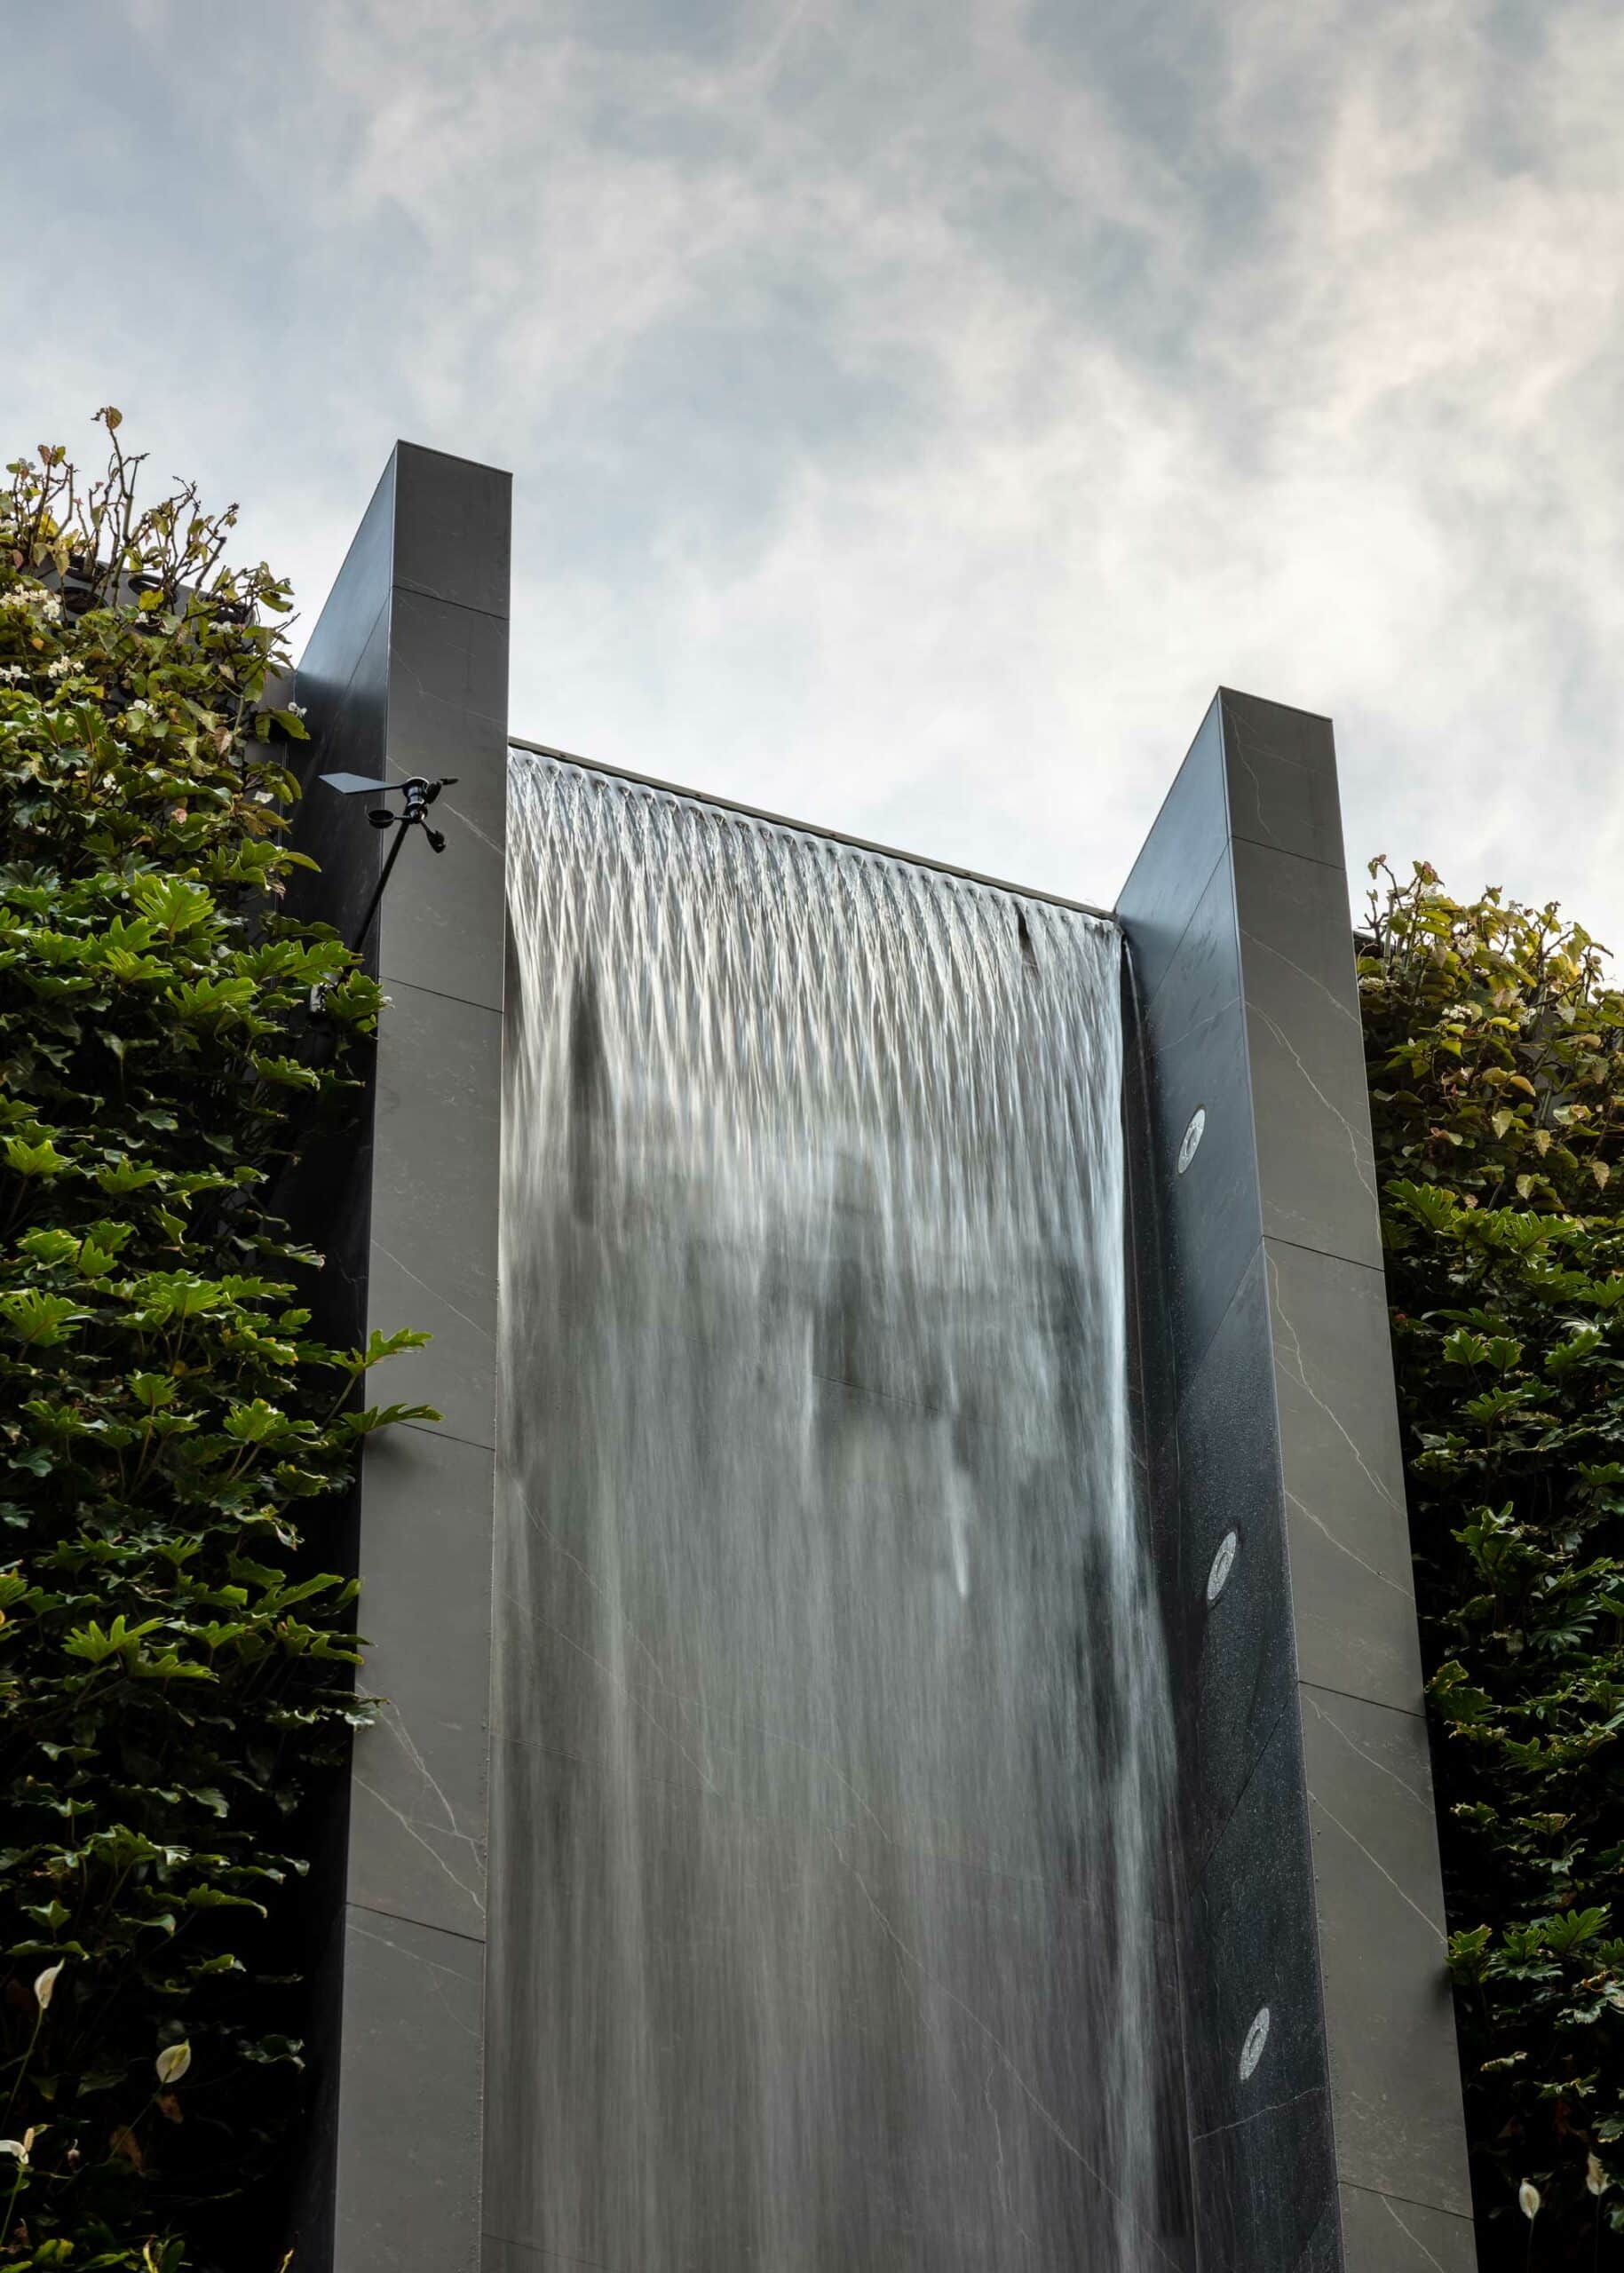 Urban waterfall  - Waterfall Dekton 5 scaled 163